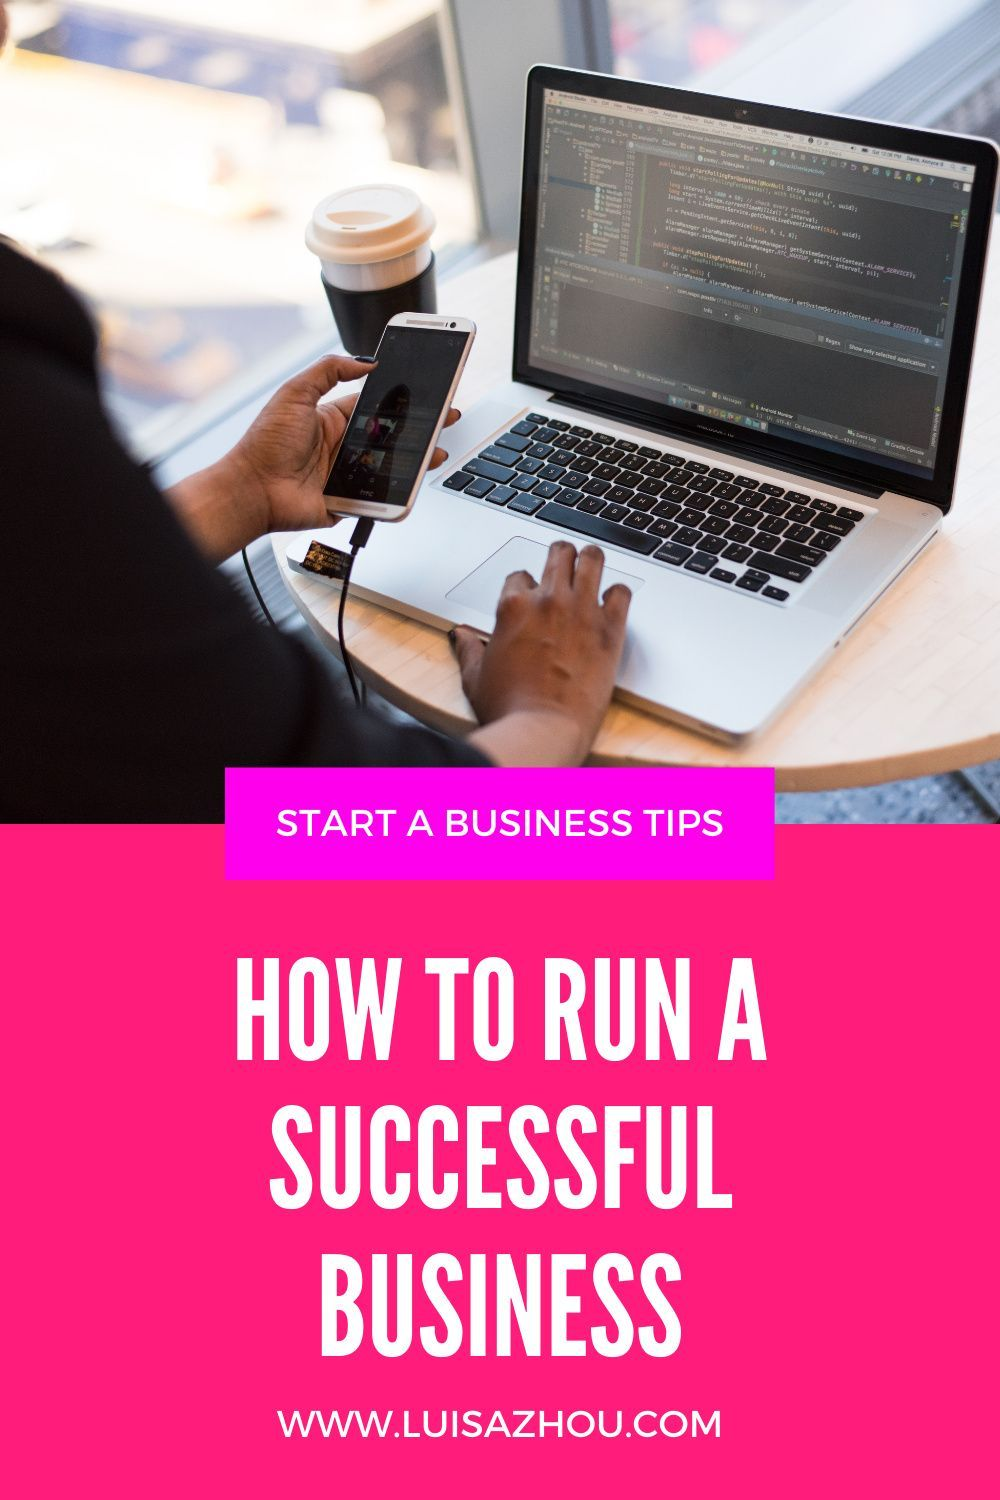 How do you run a successful business? Here's how to run a business as an entrepreneur and the 5 best run a business tips. #successfulbusiness #businesstips #runningabusiness